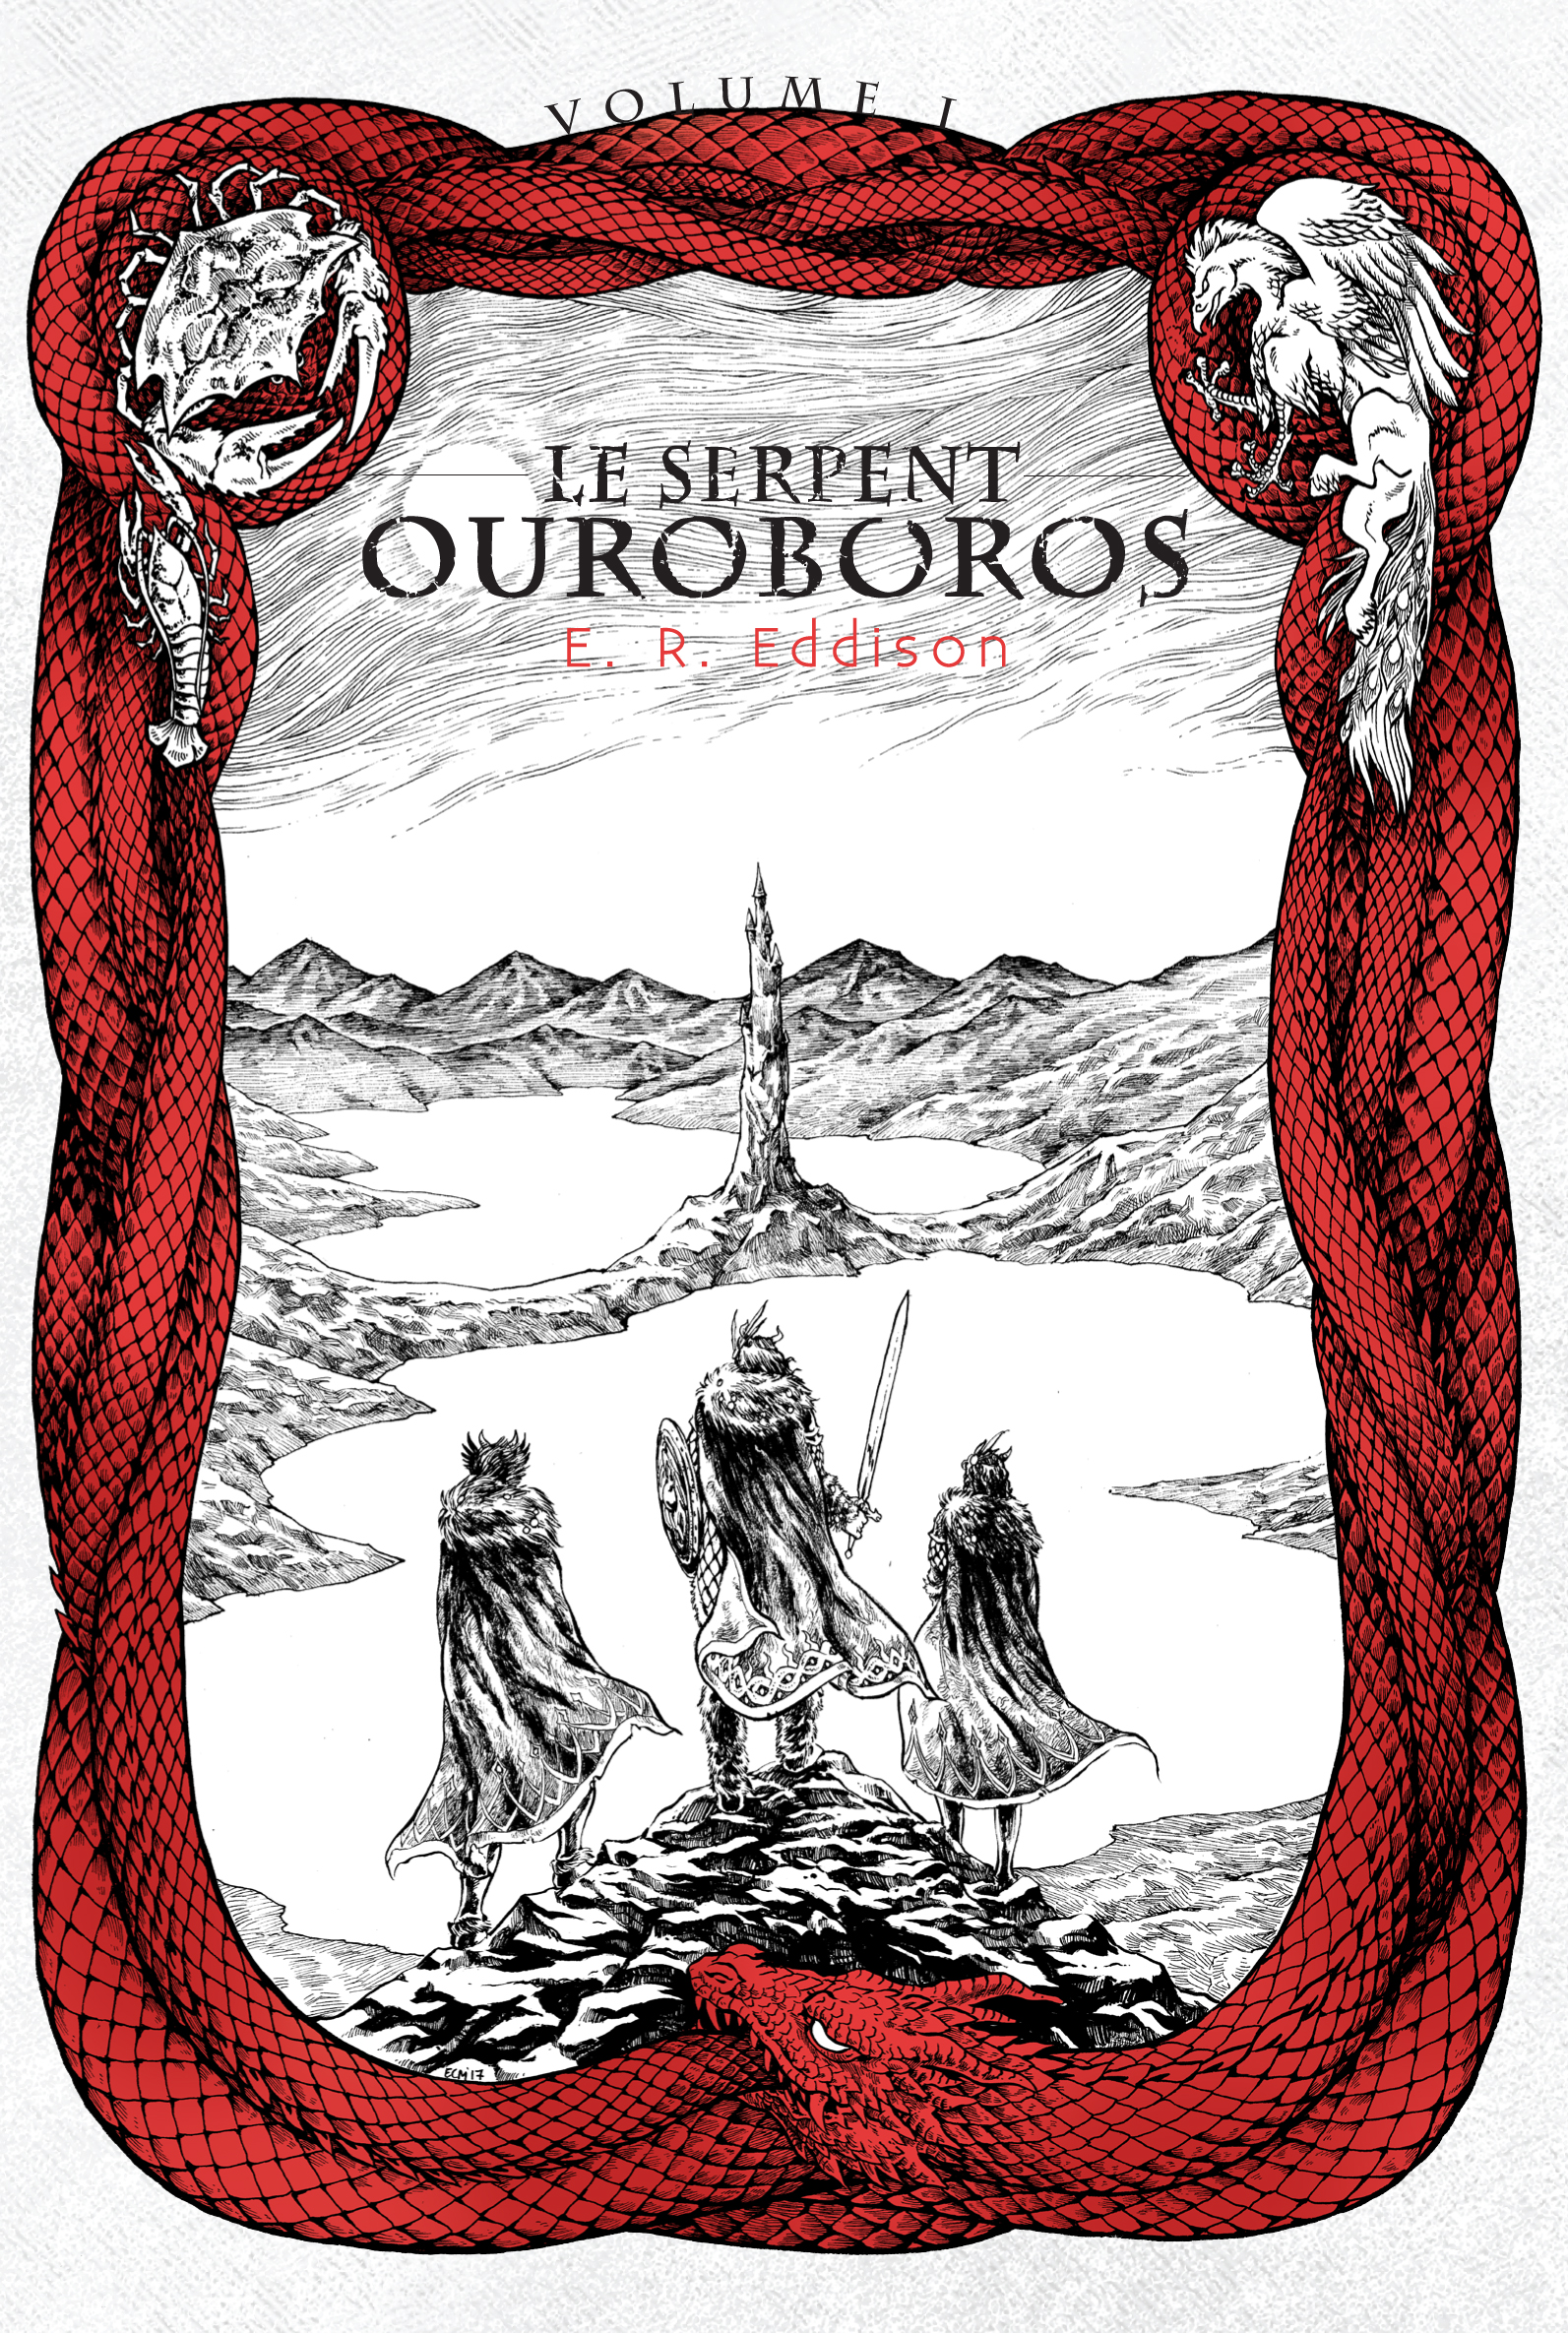 Le Serpent Ouroboros vol. 1